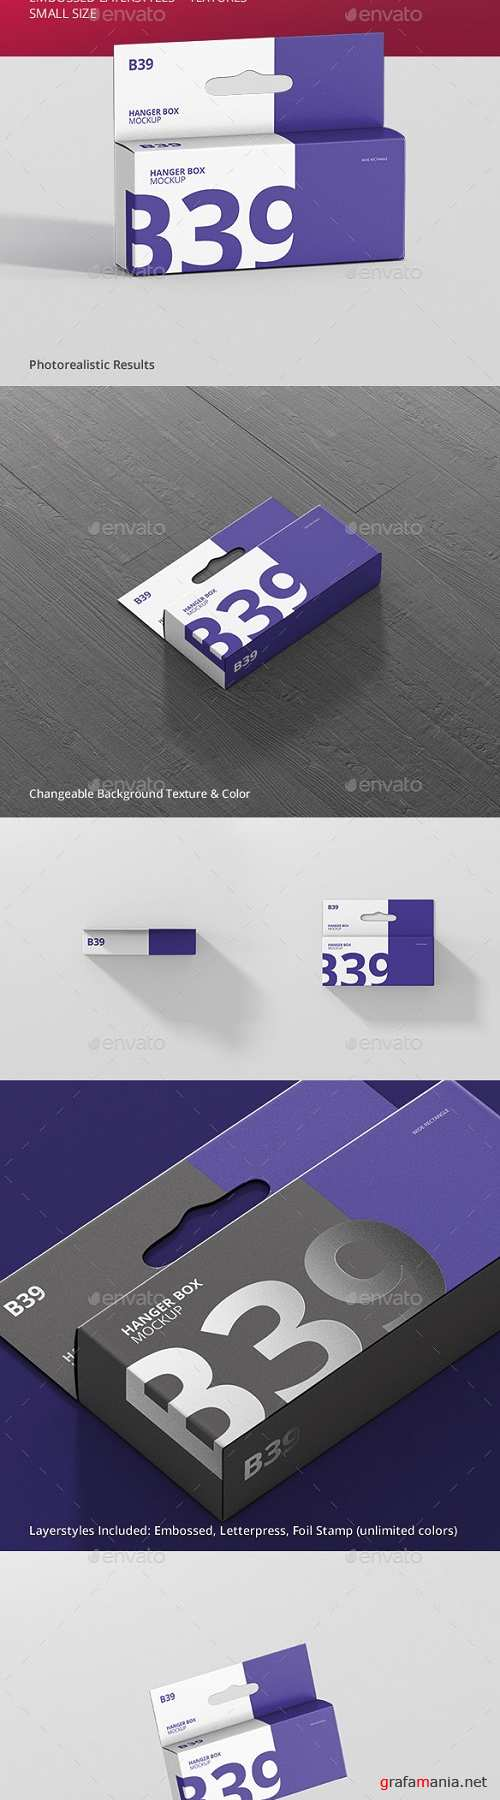 Box Mockup - Wide Small Rectangle with Hanger 21332930